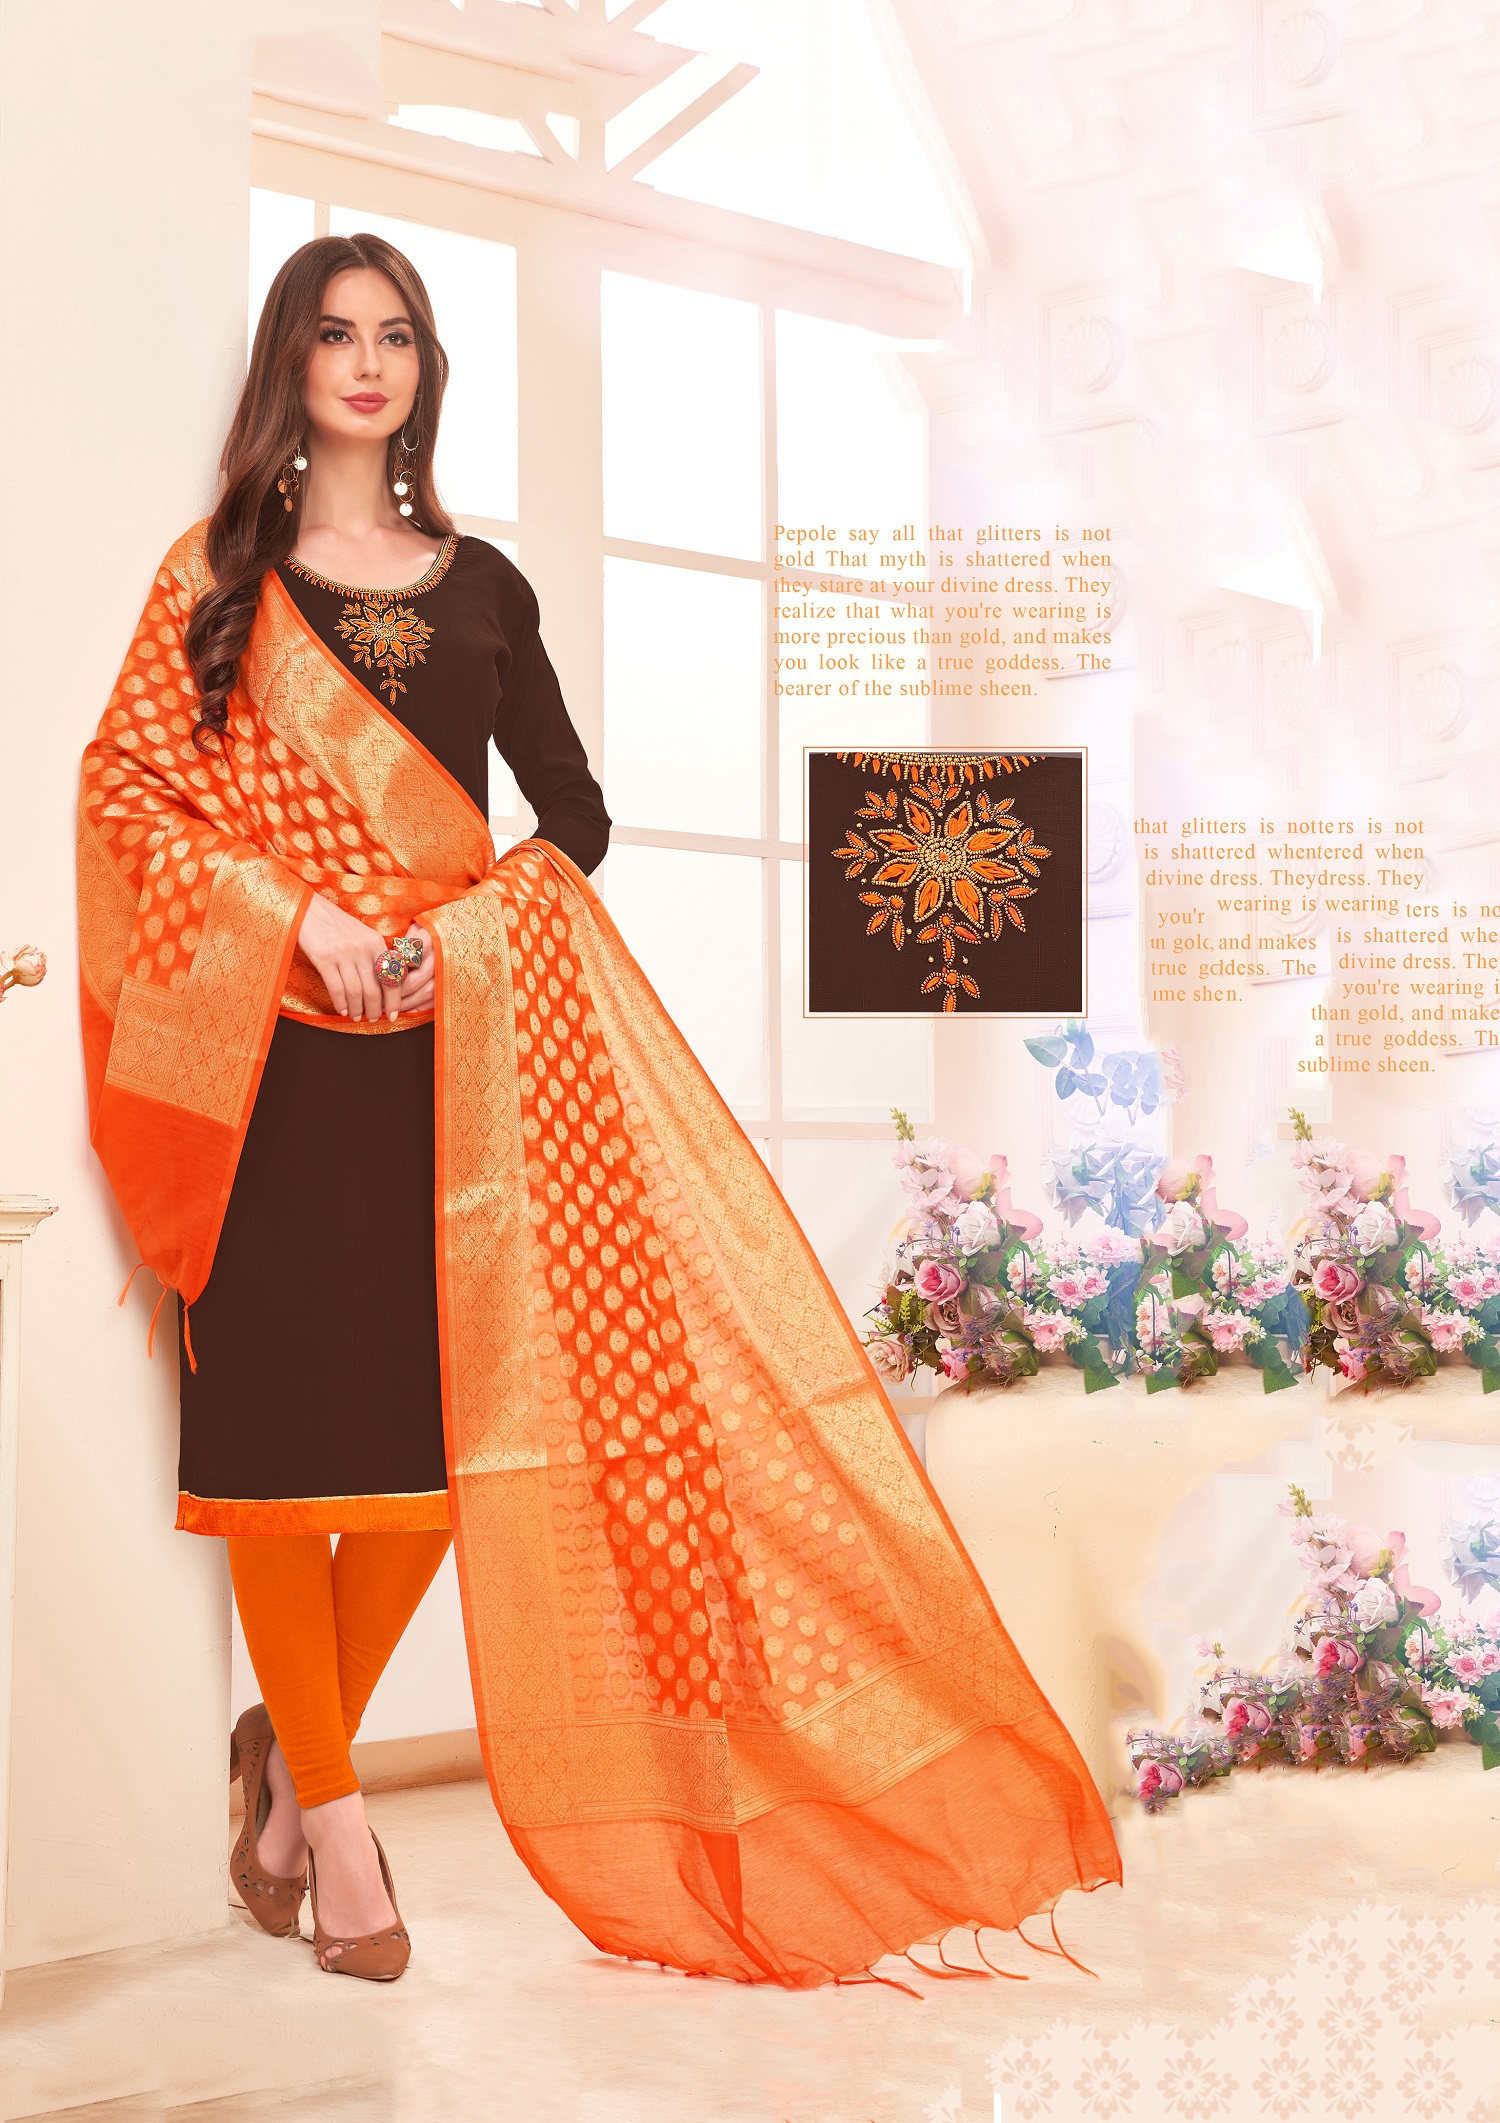 Designer Salwar Suit Top And Bottom With Brown And Orange Colour